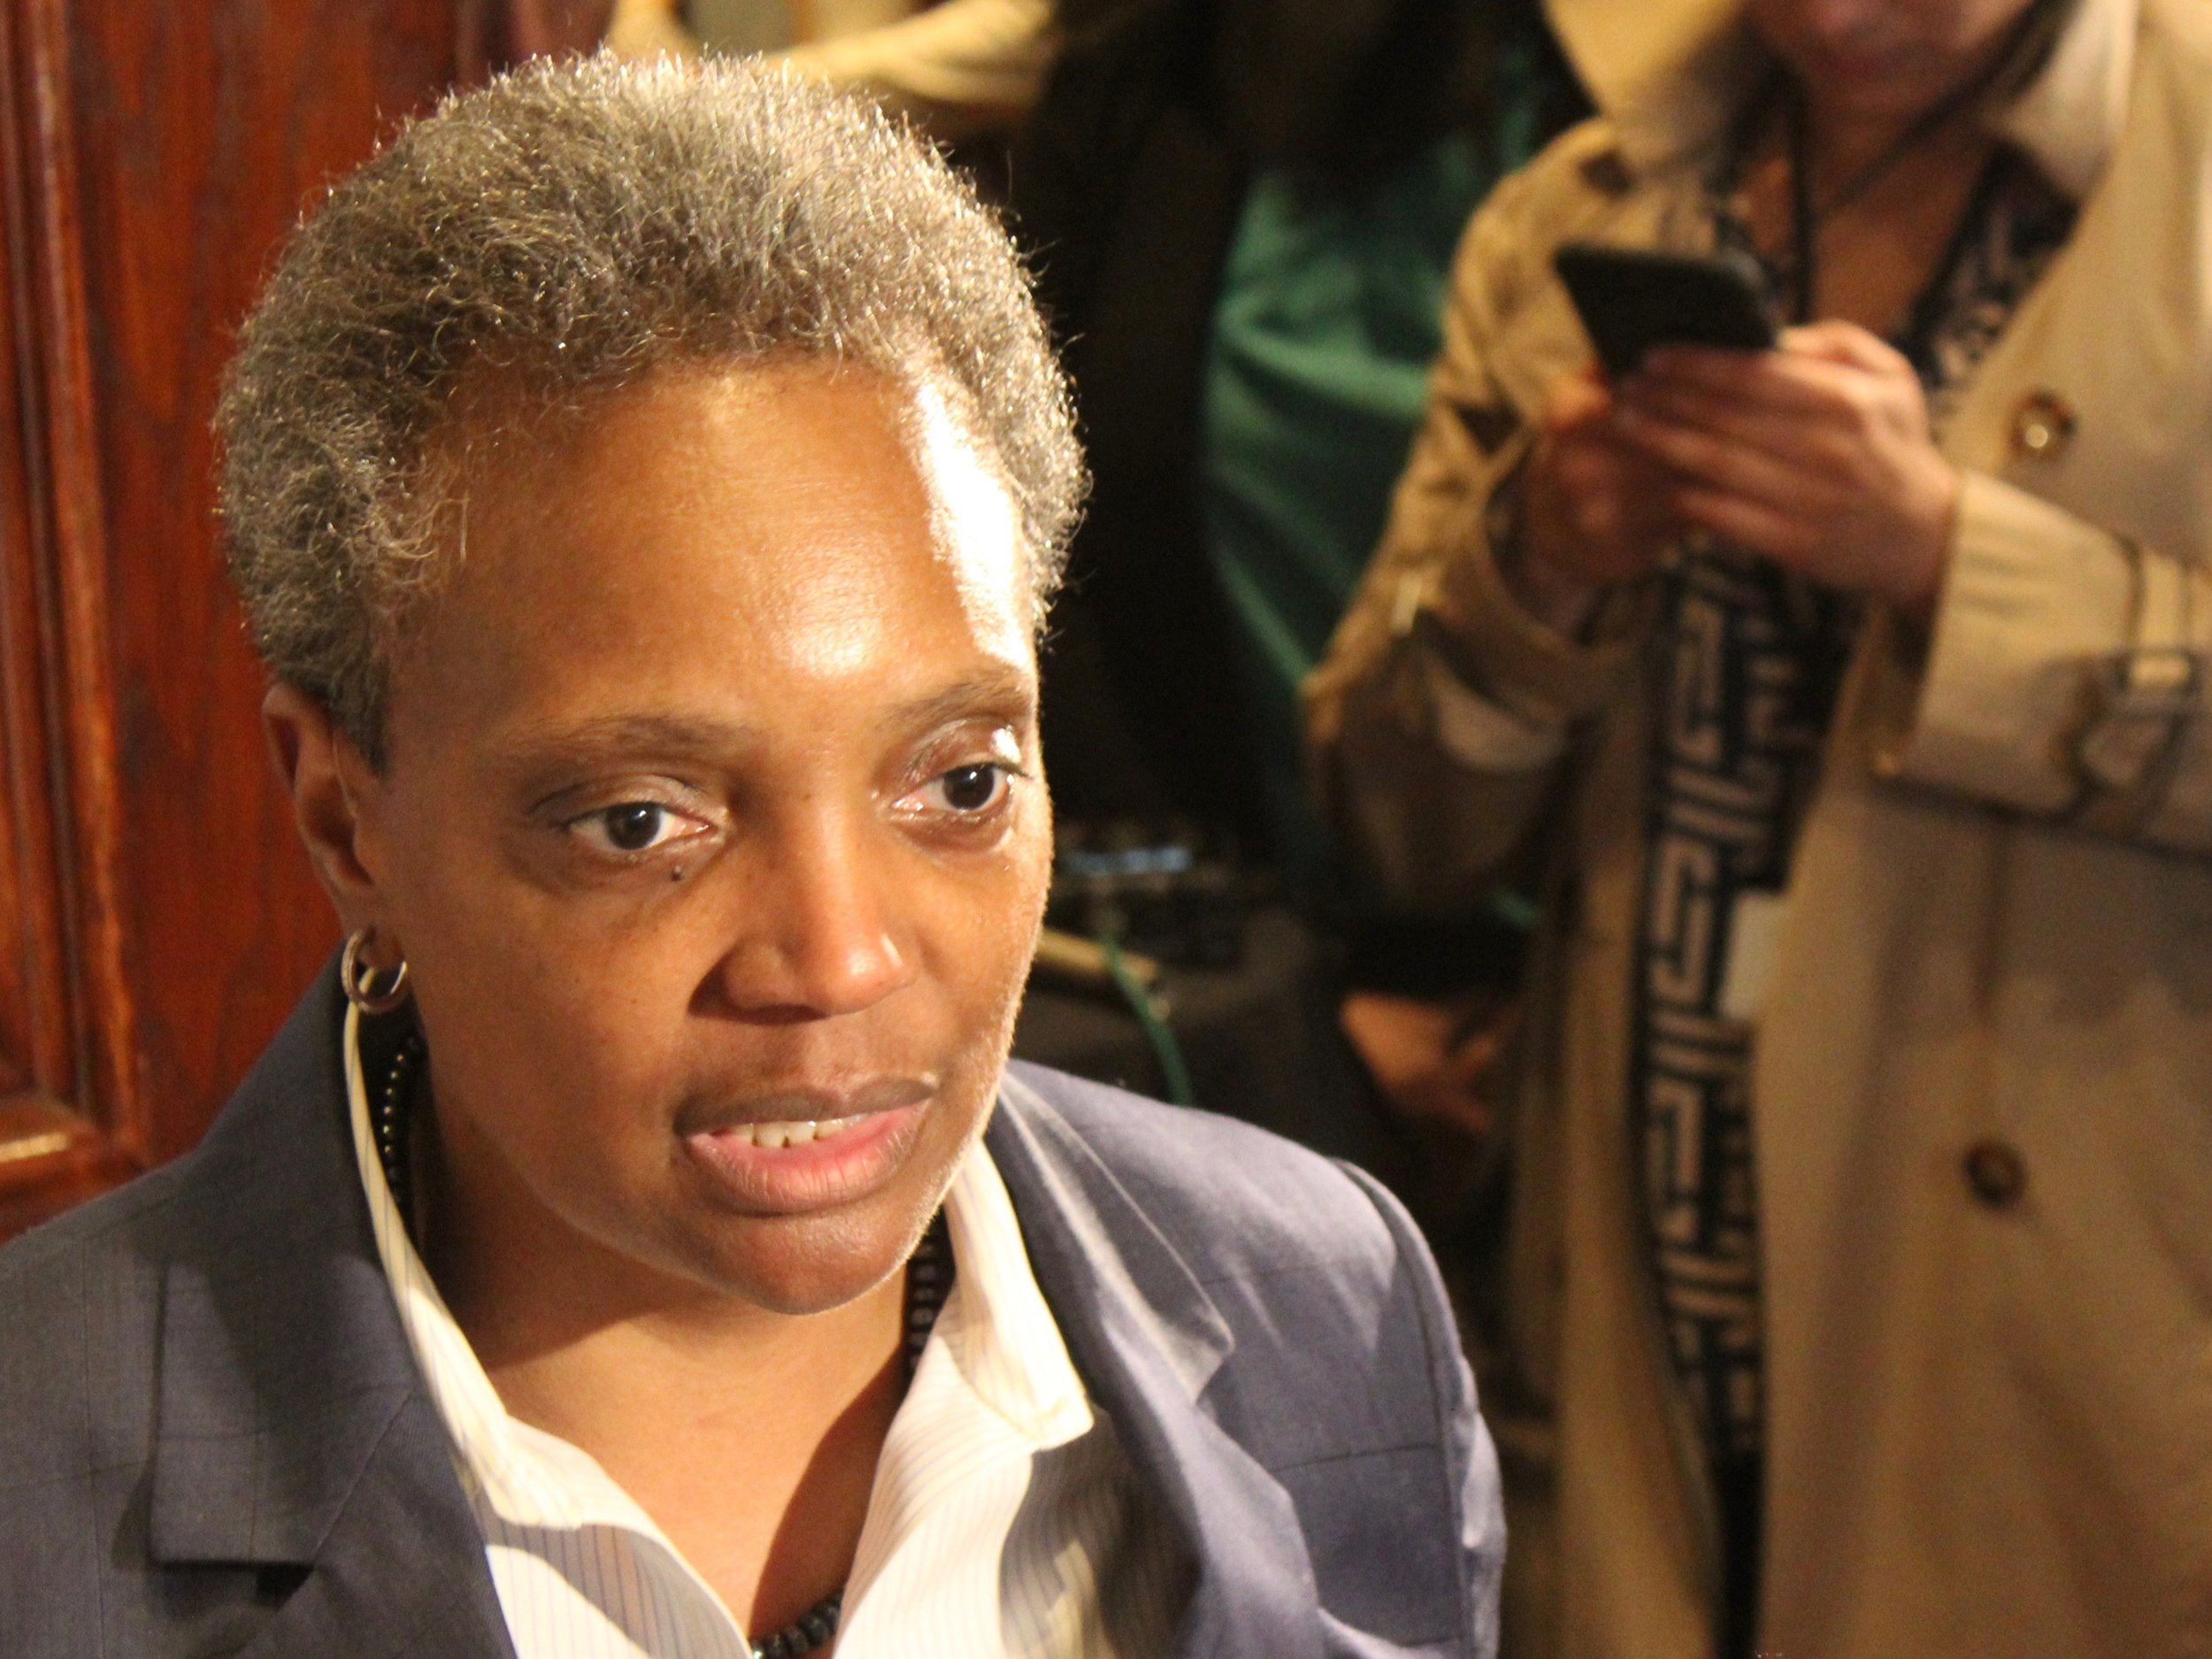 """We have to have a Chicago renaissance, and it starts with controlling the violence, the importance of our public schools, and getting our fiscal house in order."" - Chicago Mayor Lori Lightfoot (One Illinois/Ted Cox)"